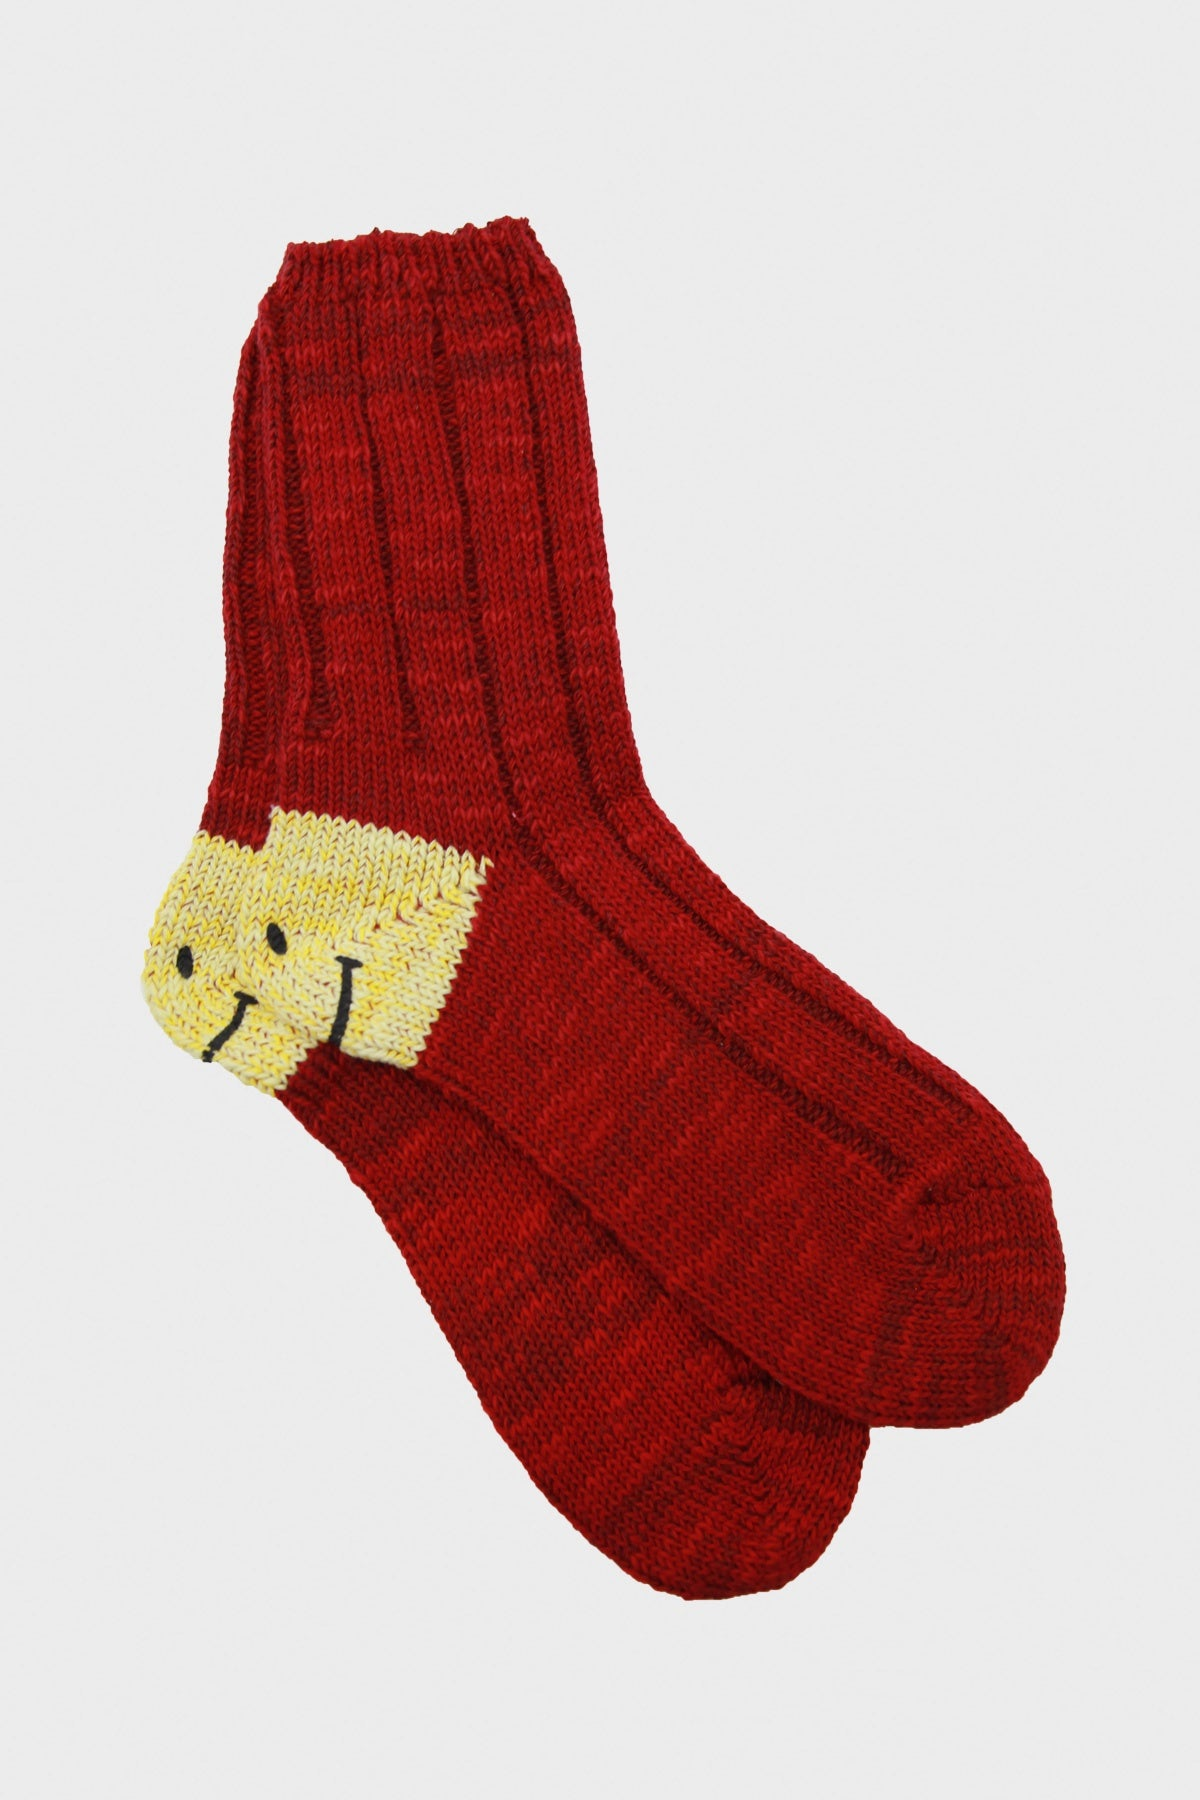 kapital 56 Yarns MA-1 Smilie Heel Socks - Burgundy